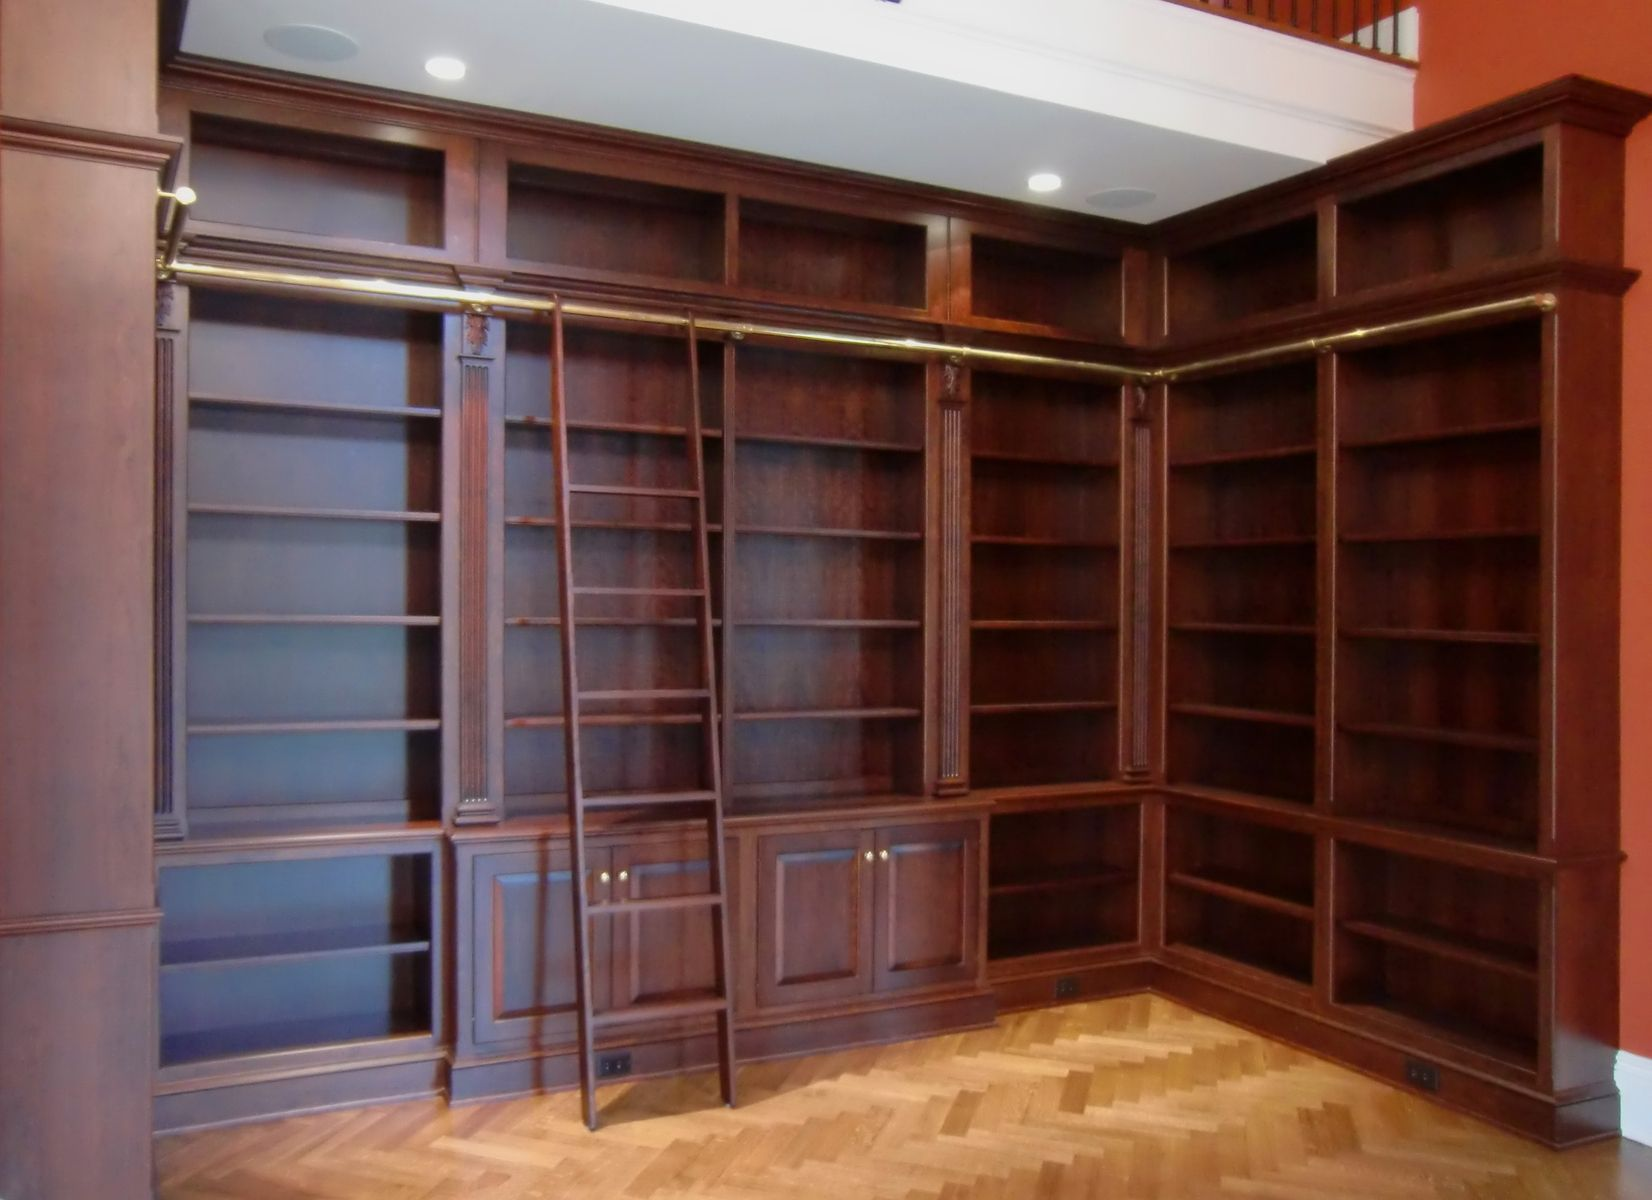 Bücherregal Mit Leiter Hand Crafted Library Bookcases With Ladder By Odhner